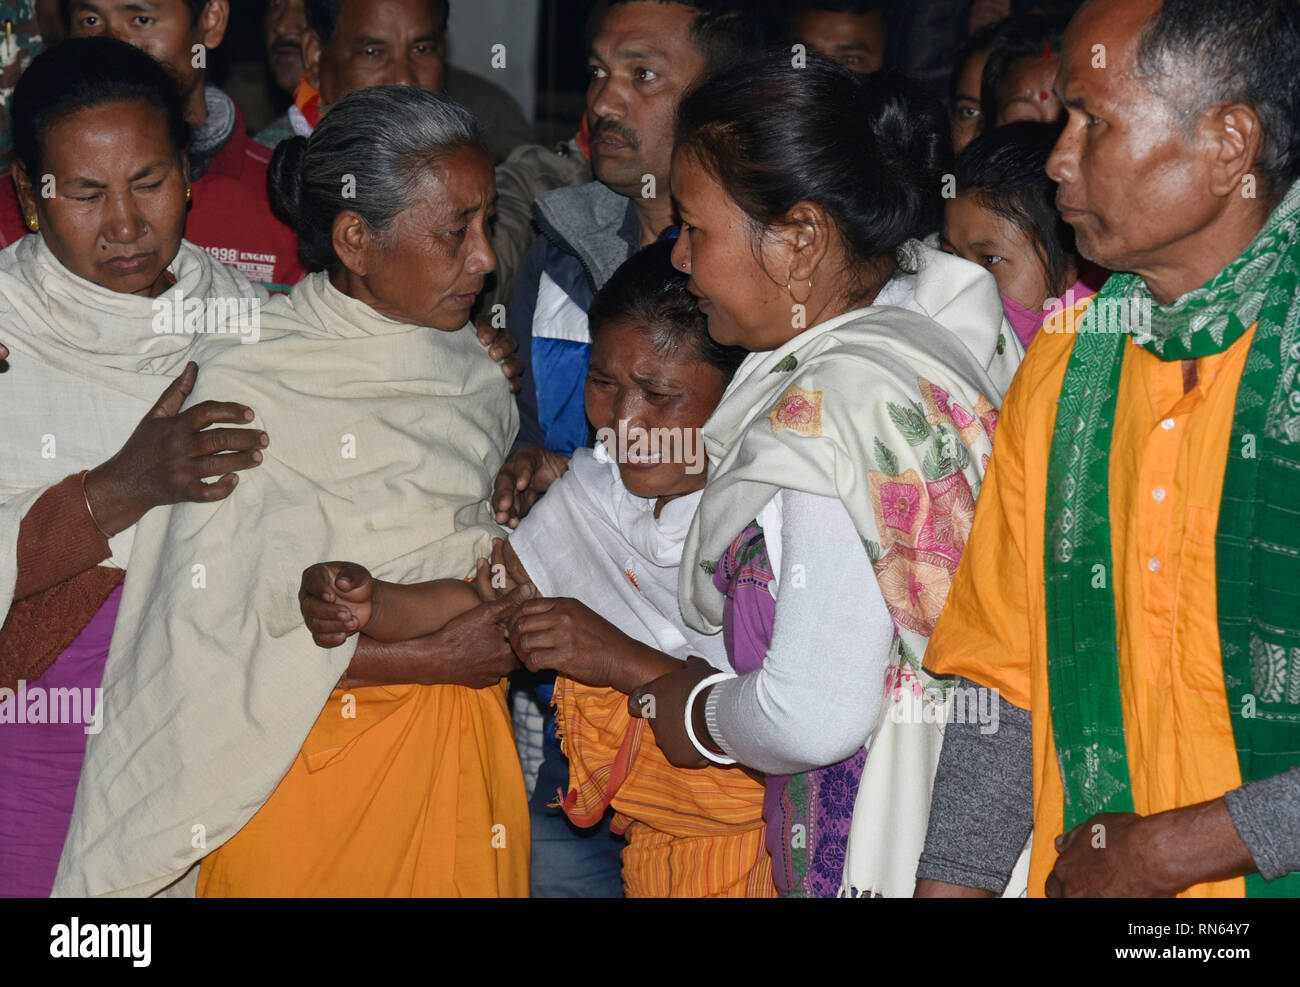 Assam, India. 16th Feb, 2019. Martyr Maneshwar Basumatary. Baksa, Assam, India. 16February 2019. Shanmoti Basumatary (Middle), wife of slain Central Reserve Police Force (CRPF) soldier, Maneshwar Basumatary mourn before his cremation ceremony at village Tamulpur in Baksa district, Assam, India, 16 February 2019. At least 44 Indian paramilitary Central Reserve Police Force personnel were killed and several injured when a Jaish-e-Mohammed militant rammed an explosive-laden vehicle into a CRPF convoy along the Srinagar-Jammu highway at Lethpora area in South Kashmir's Pulwama district on 14 Febru - Stock Image